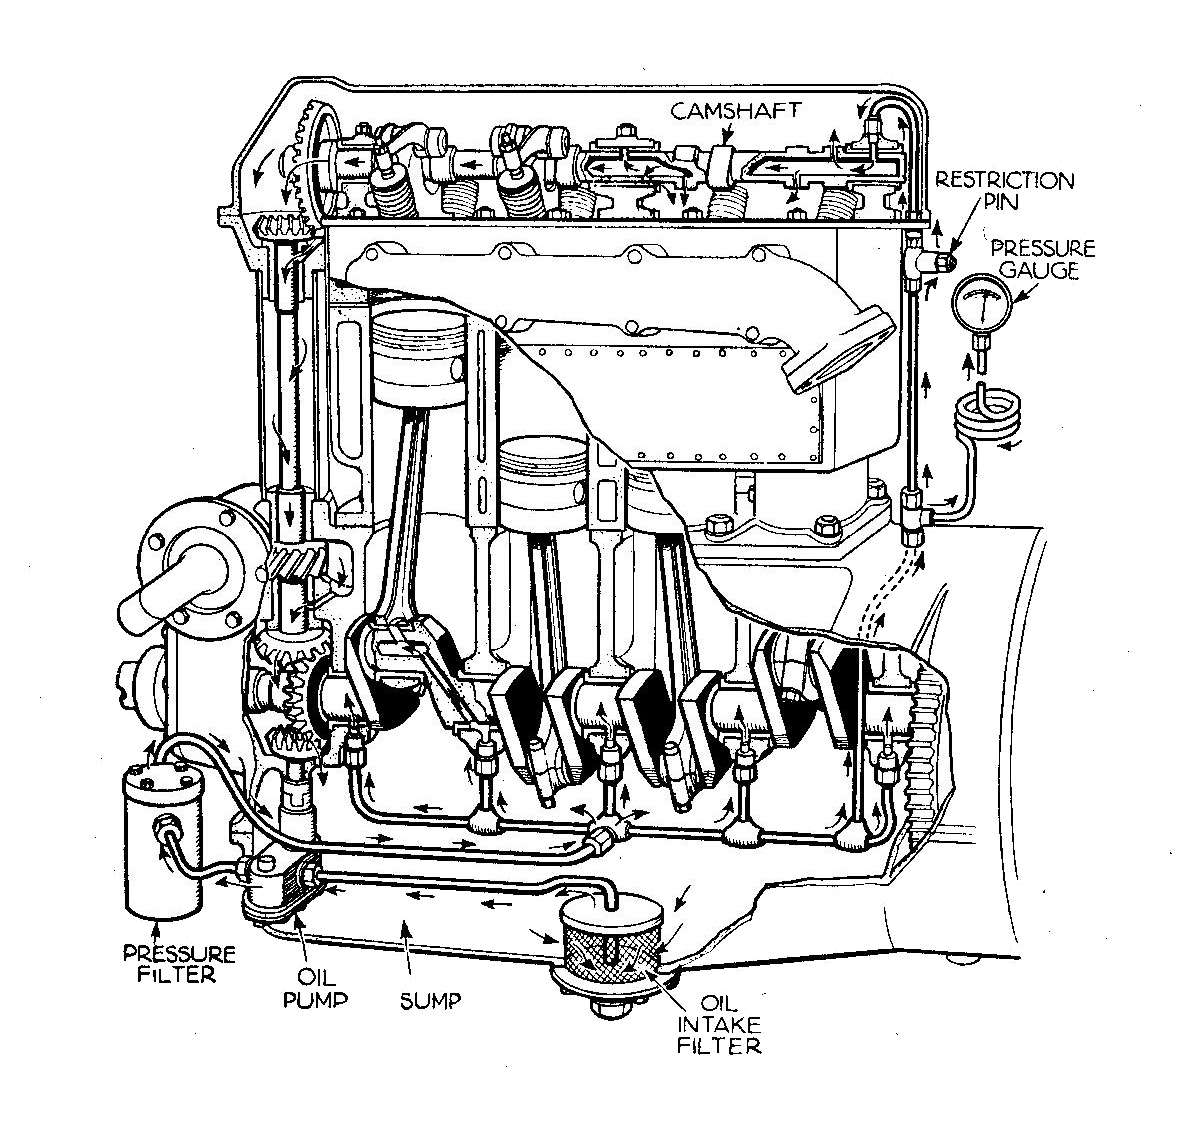 Oil Pump Internal Combustion Engine Wikipedia Car Diagrams